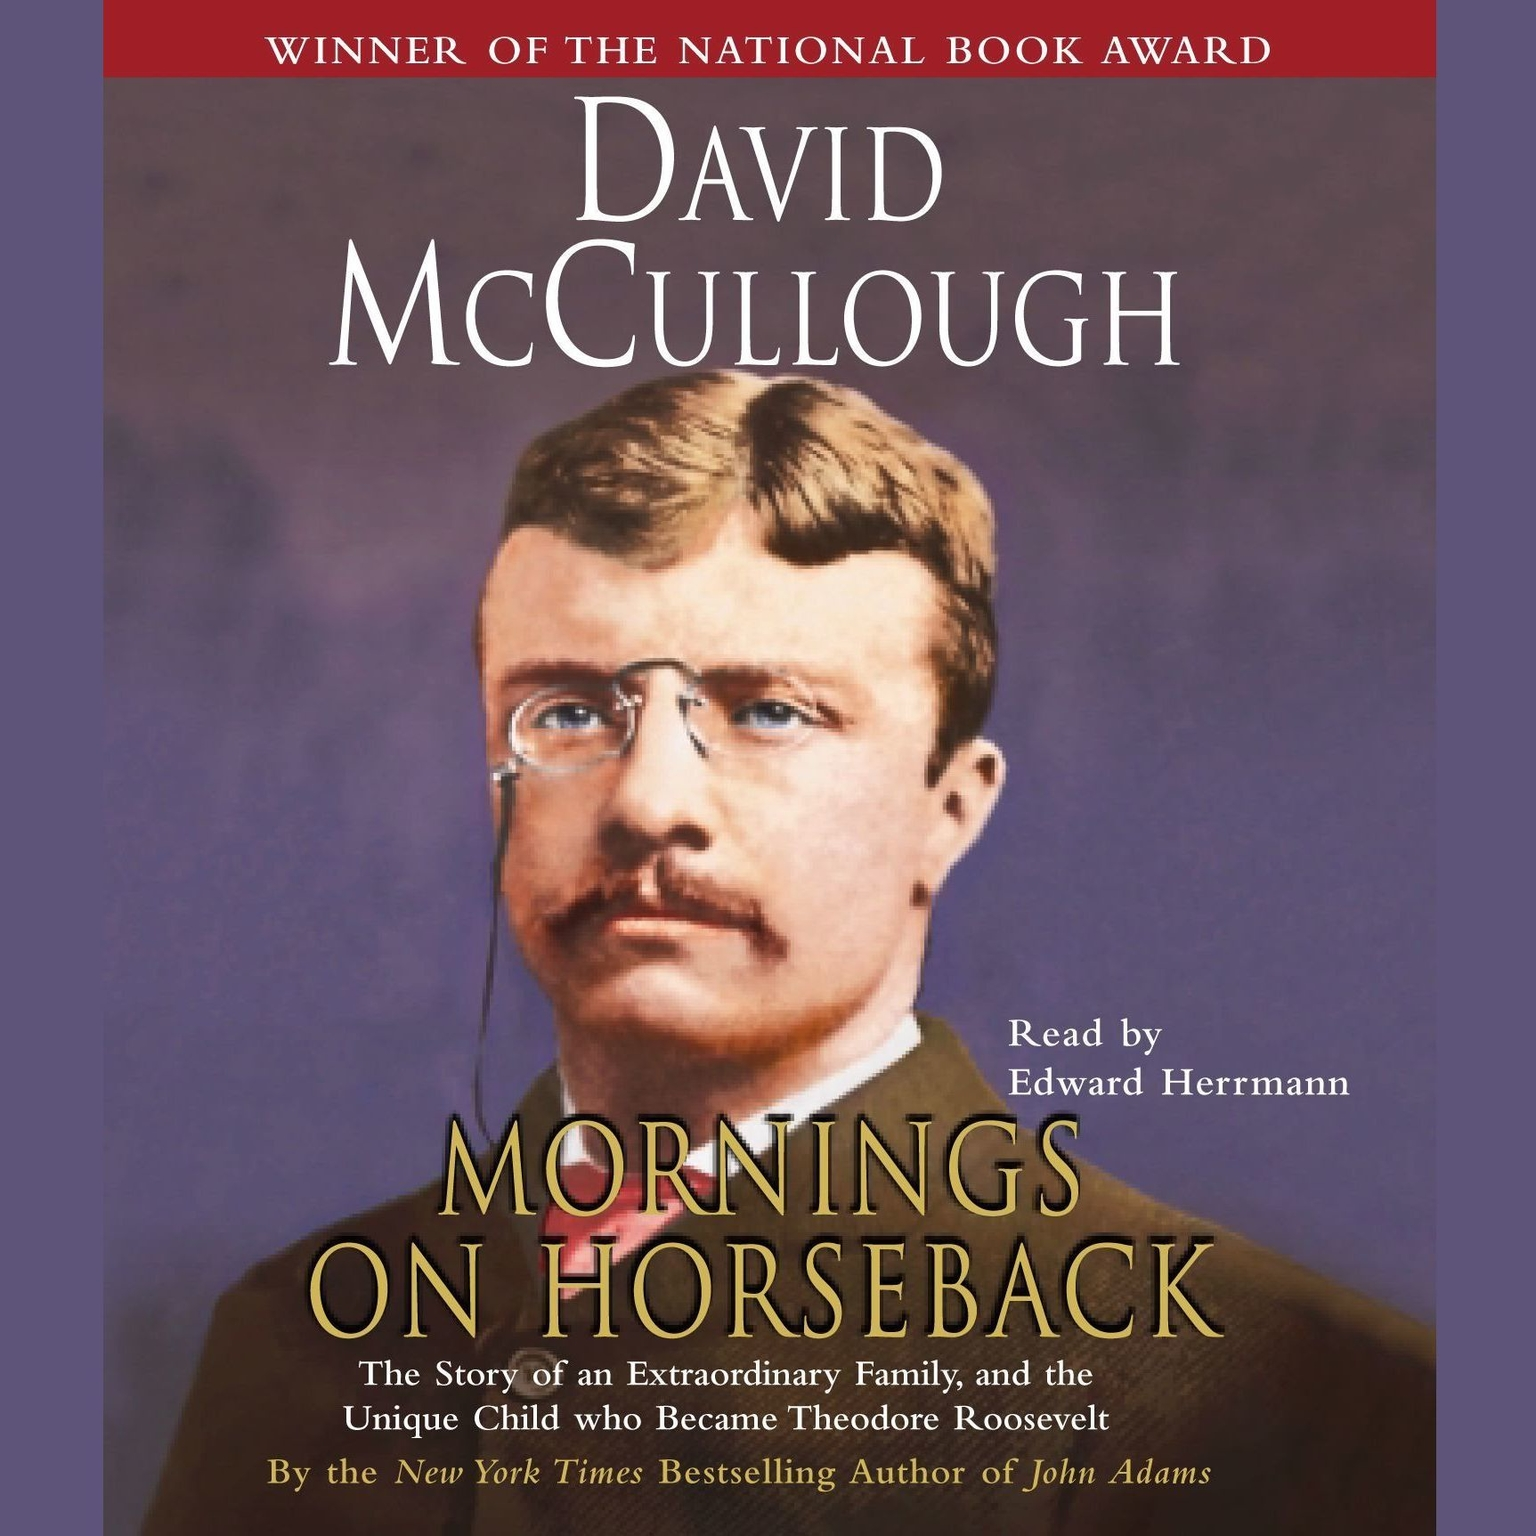 Printable Mornings On Horseback: The Story of an Extraordinary Family, a Vanished Way of Life, and the Unique Child Who Became Theodore Roosevelt Audiobook Cover Art